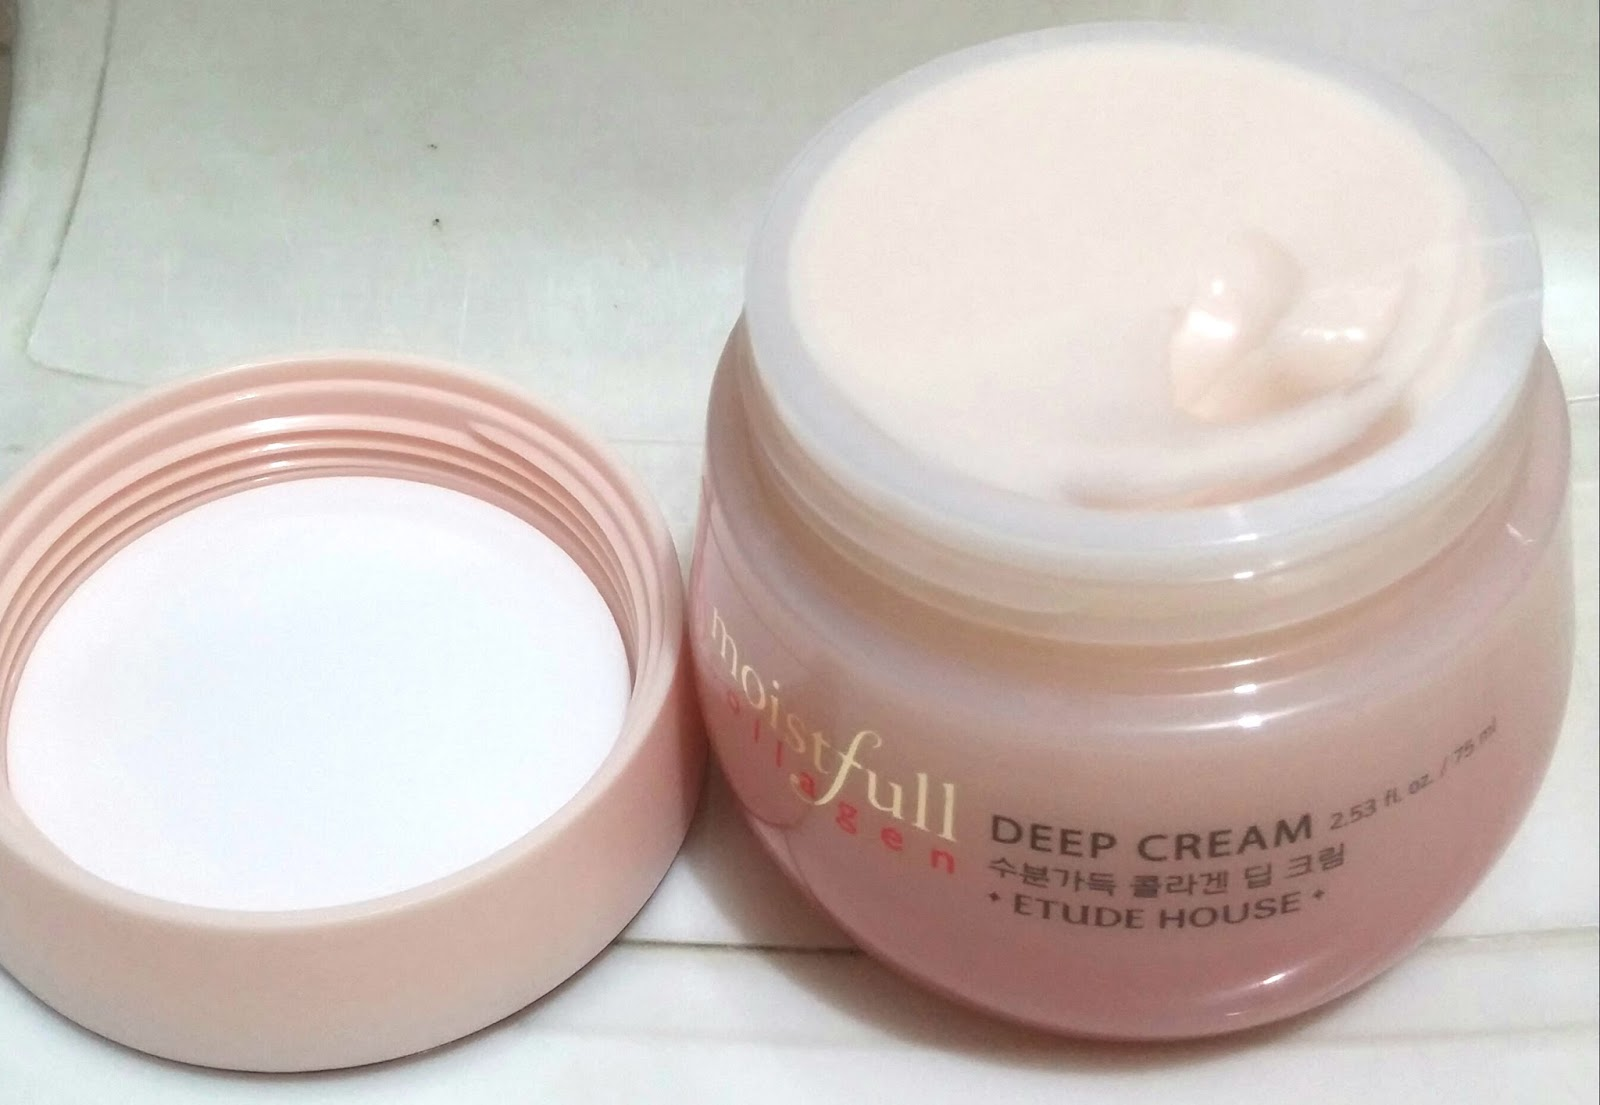 EtudeHouse Moistfull Collagen Deep Cream